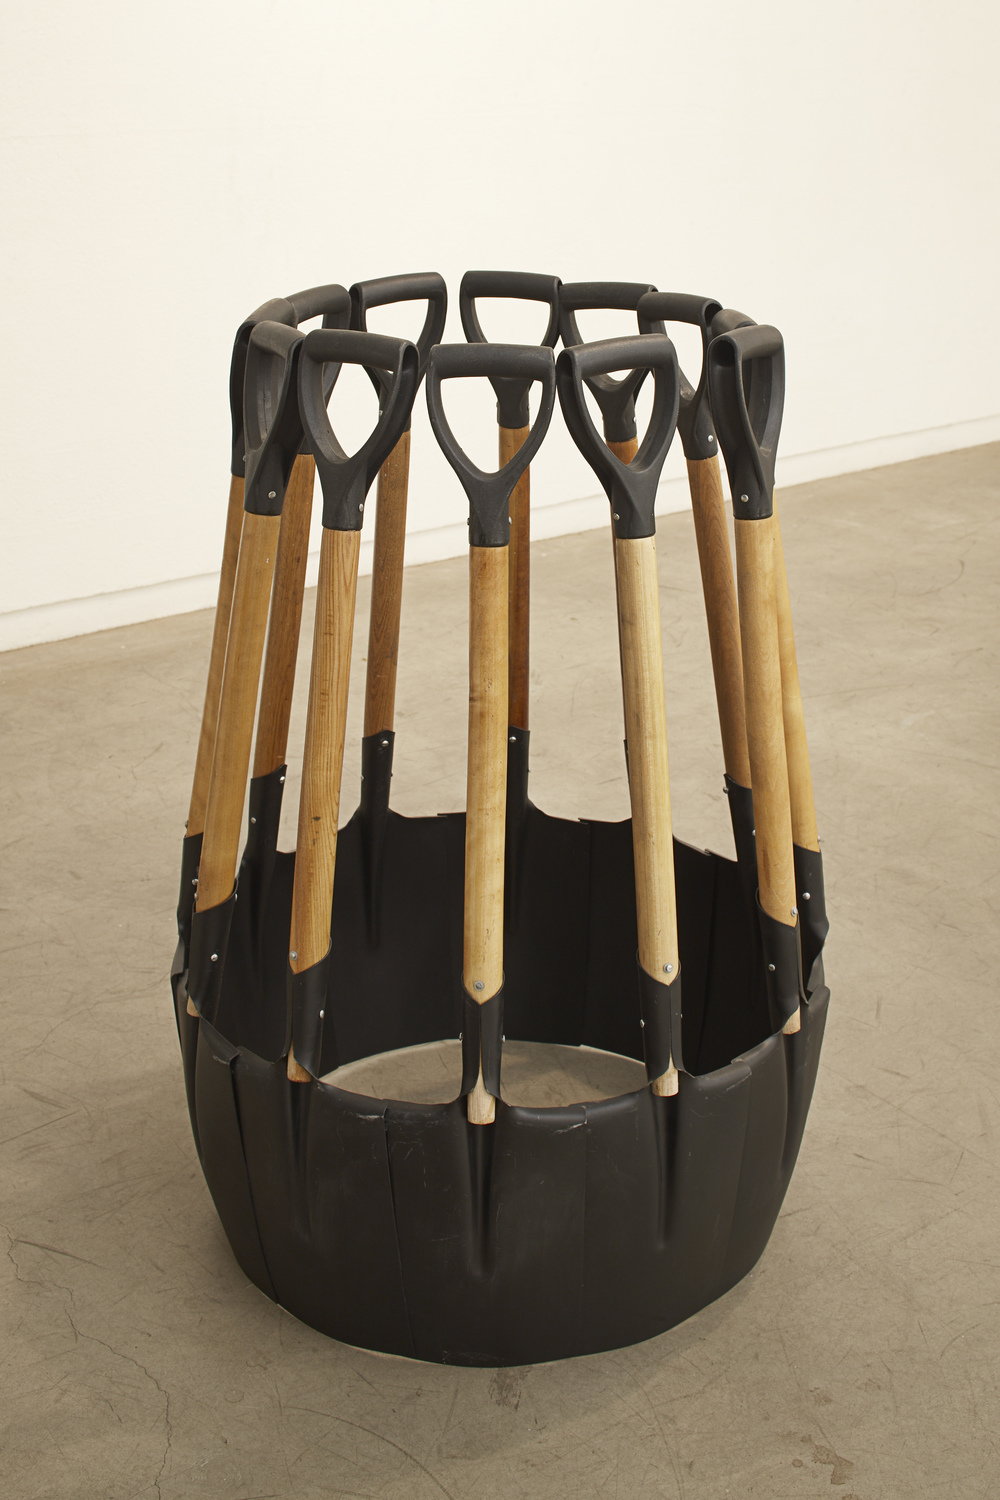 In Advance of the Broken Army, 2009 Steel, Wood 102 x 73 x 72 cm